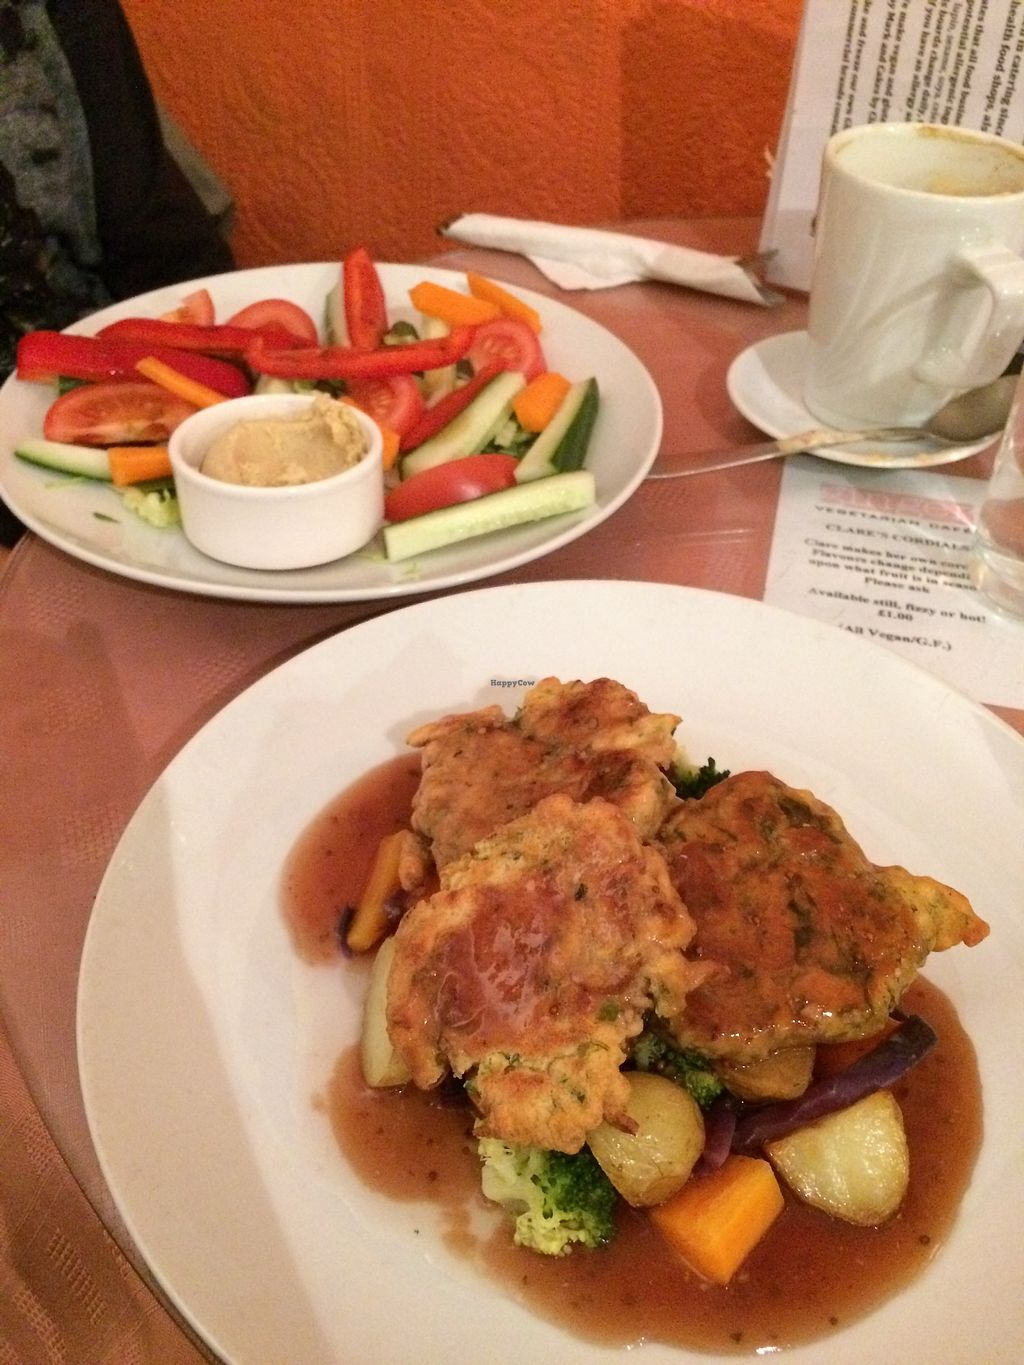 """Photo of Ginger Vegetarian Cafe  by <a href=""""/members/profile/Hoggy"""">Hoggy</a> <br/>Top dish - 'Strips and Dip'.  Bottom Dish - Specials Menu, Vegan 'Parsnip and Chive cakes with potatoes, vegetables and gravy' <br/> July 23, 2017  - <a href='/contact/abuse/image/16682/283771'>Report</a>"""